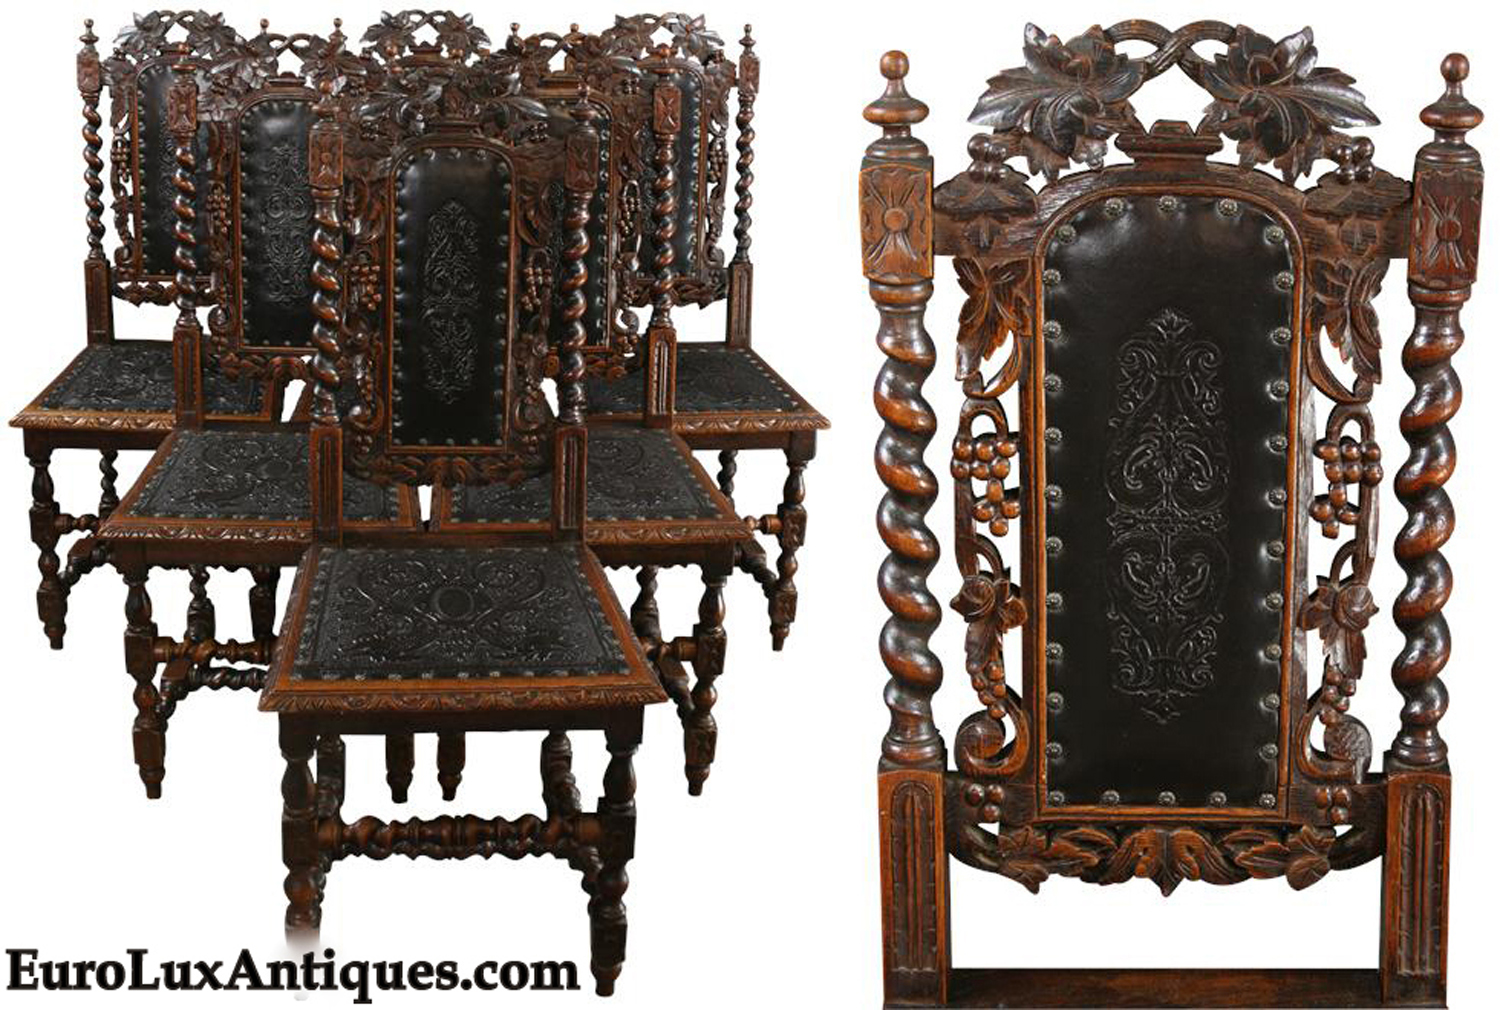 Antique French Hunting Chairs Thrones Vintage Spanish Renaissance Table Art Deco Buffet From